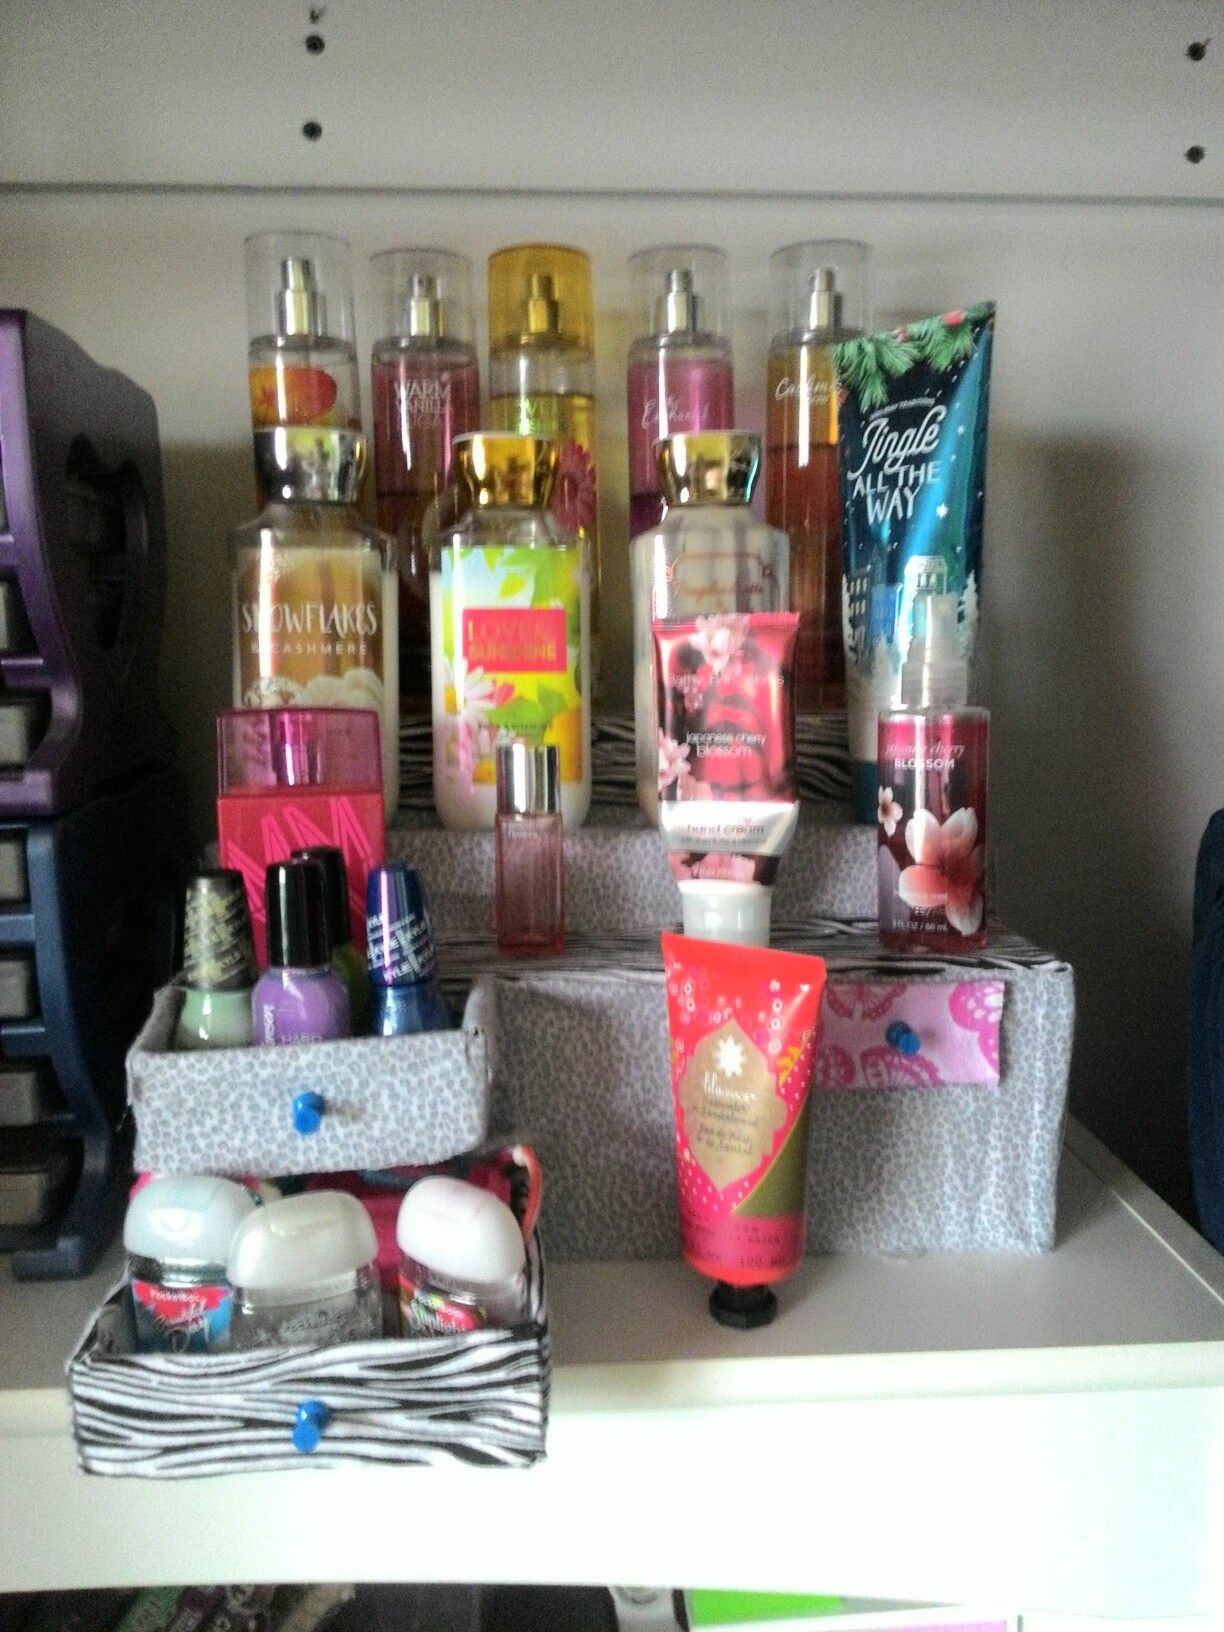 Diy Perfume Lotion Organizer Out Of Cardboard Boxes Diy Perfume Organizer Diy Perfumed Lotion Perfume Organization